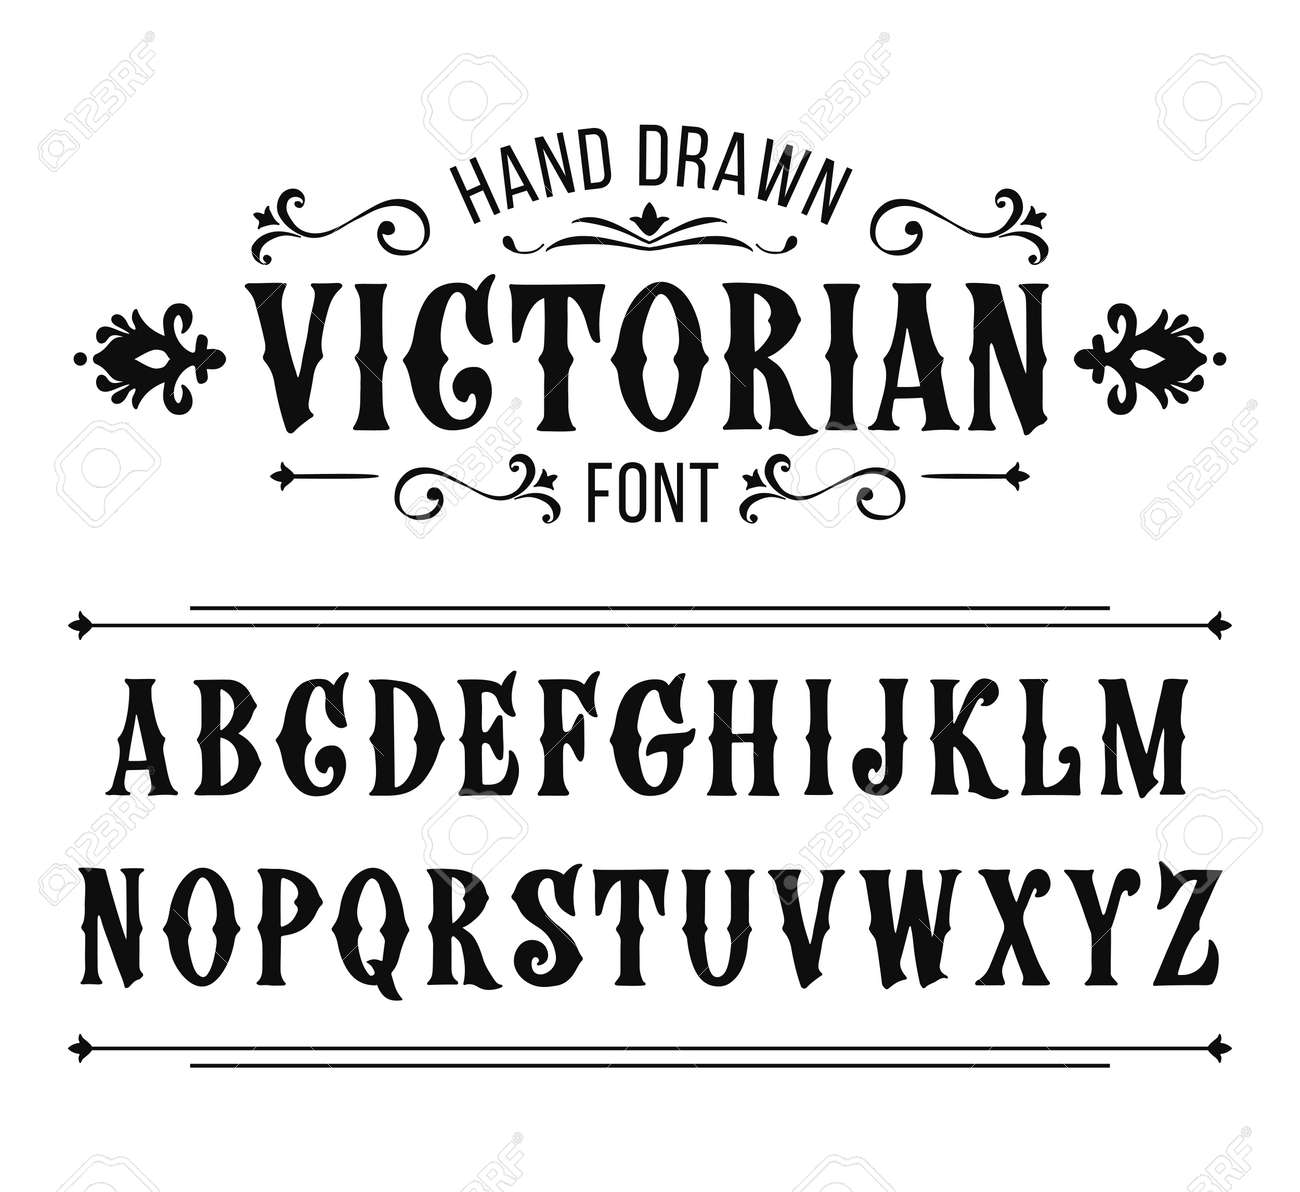 Calligraphy Fonts Victorian Hand Drawn Letters Vector Alphabet In Victorian Style